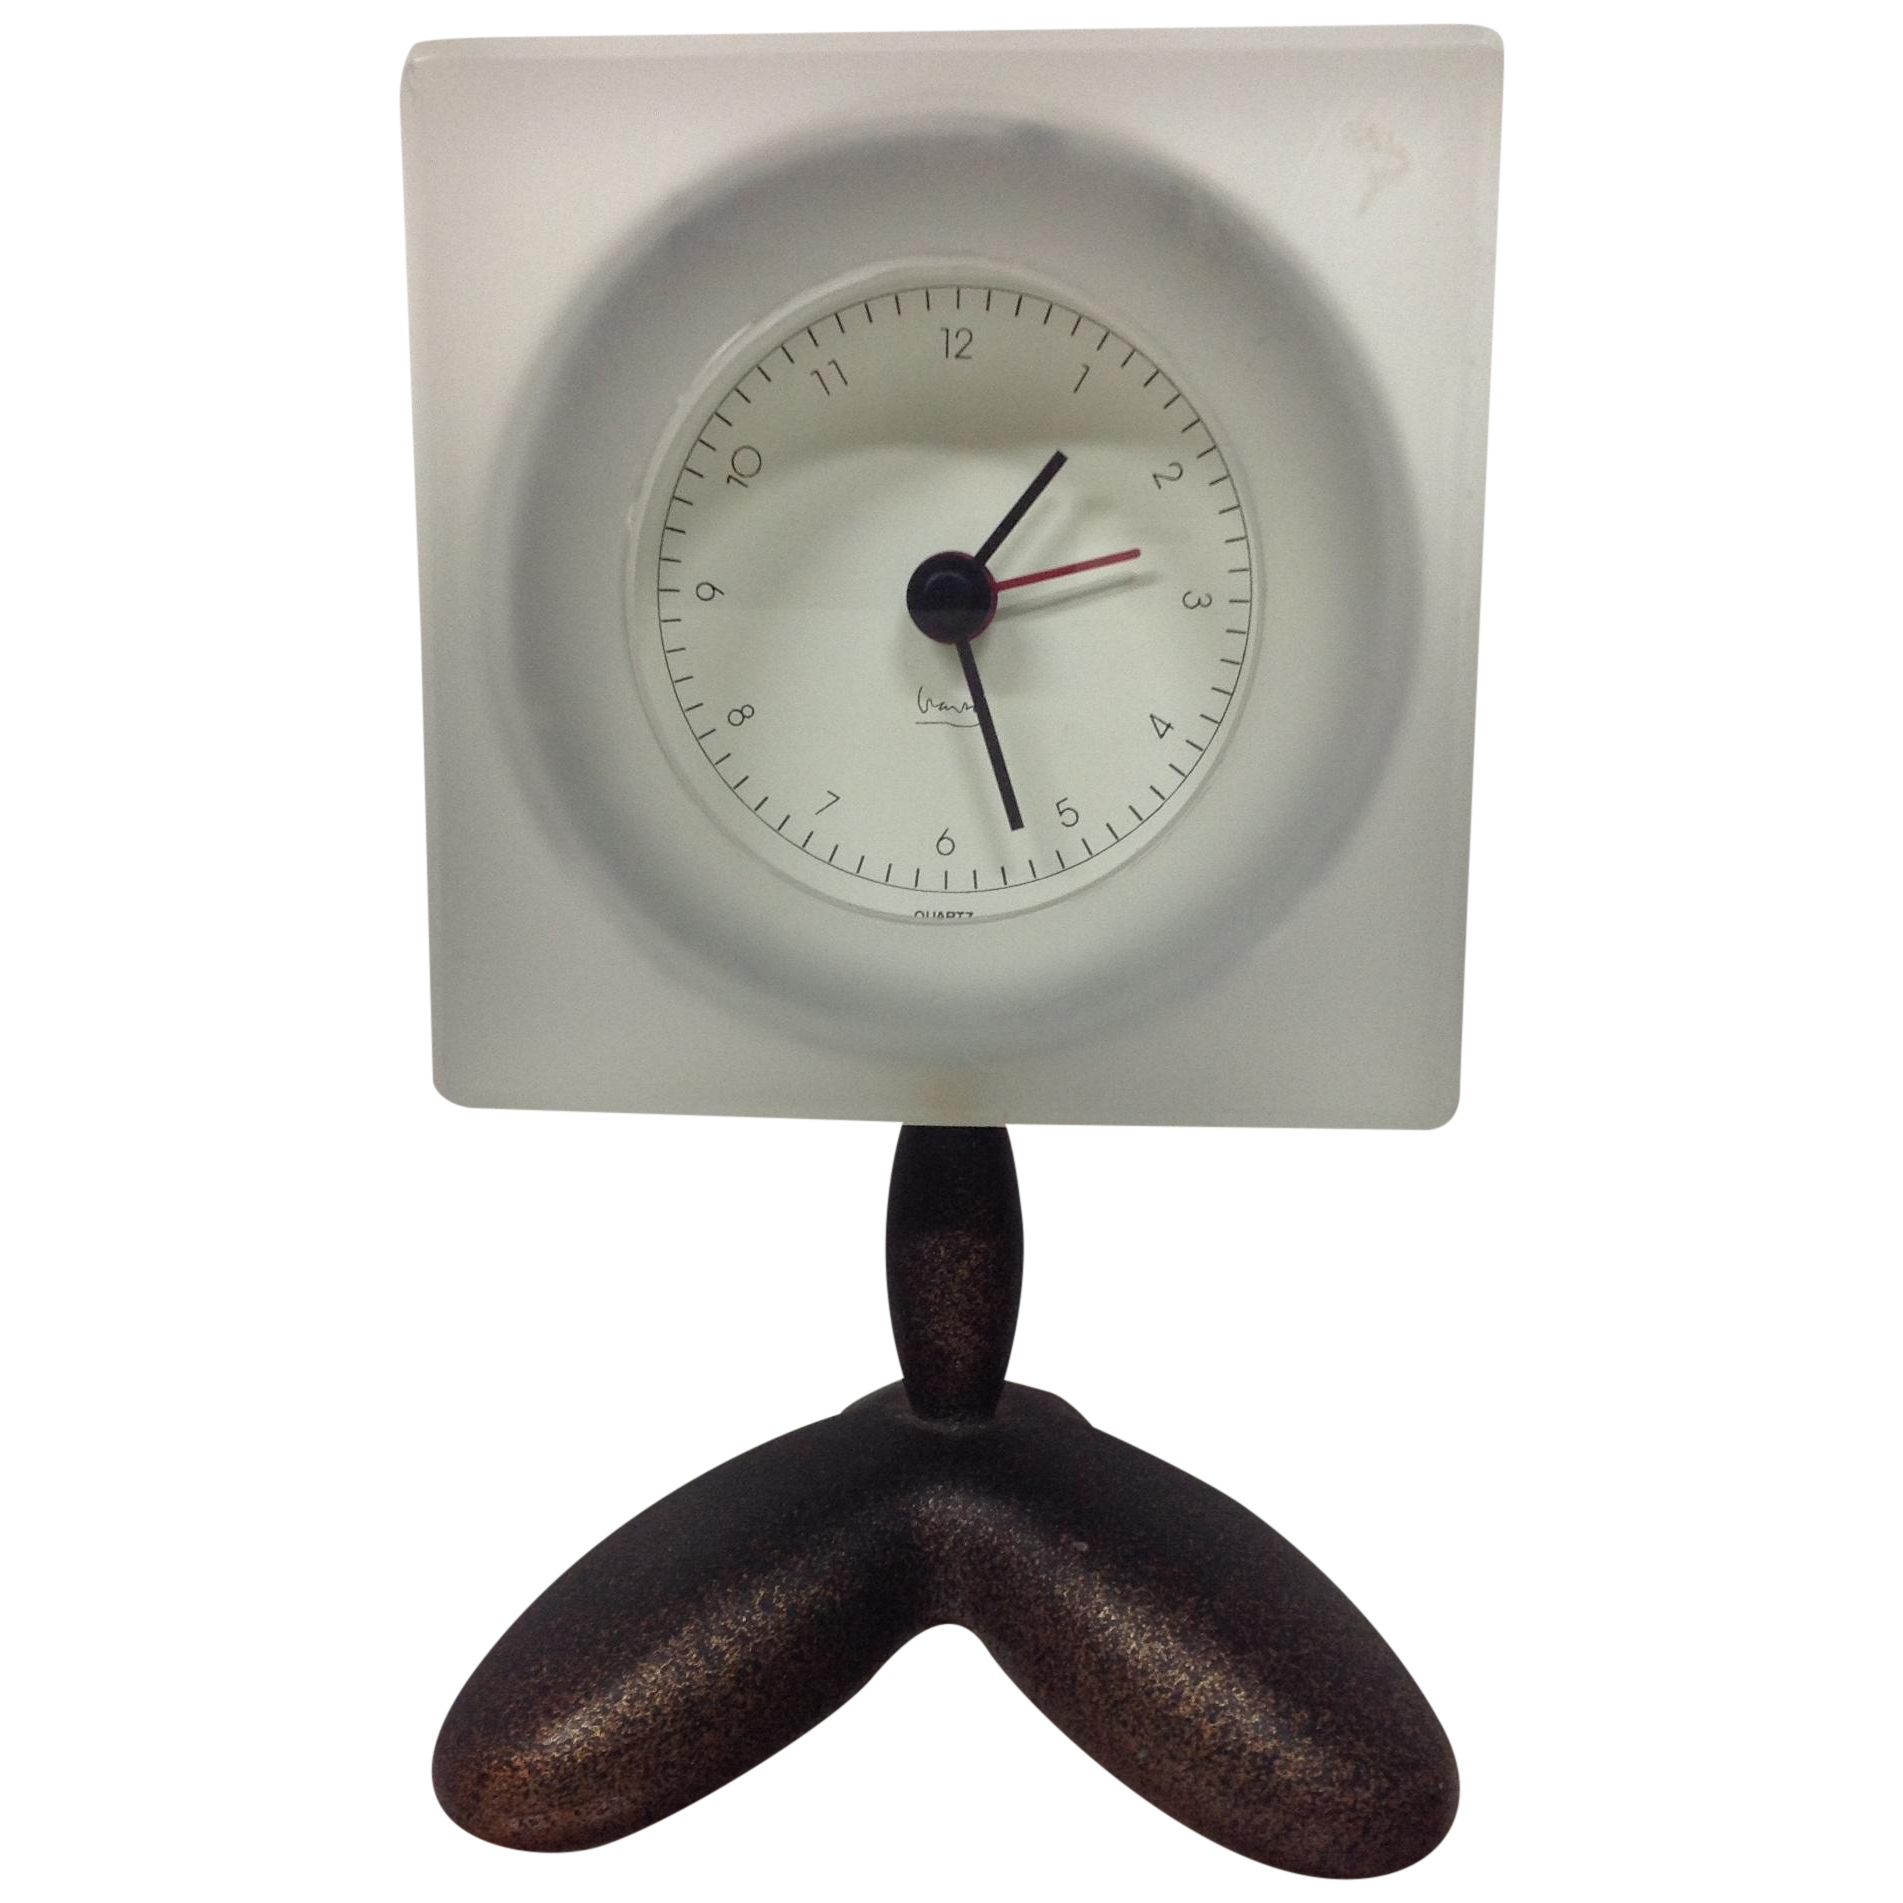 wendell castle style post modern clock by michael graves  chairish - image of wendell castle style post modern clock by michael graves